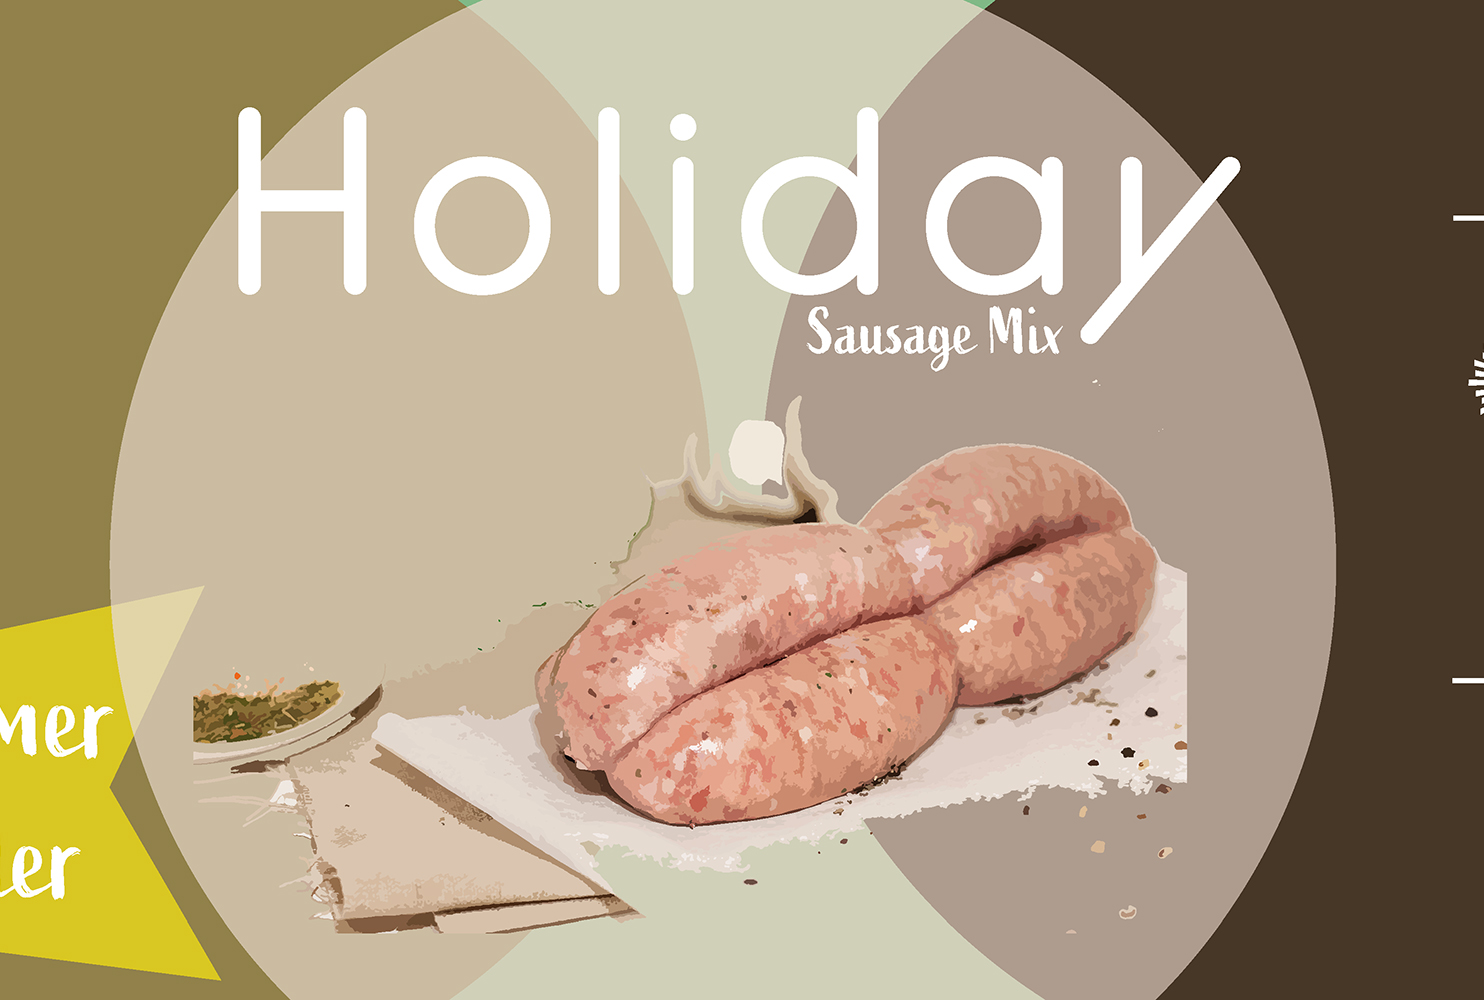 COUNTRY FAYRE HOLIDAY SAUSAGE MIX